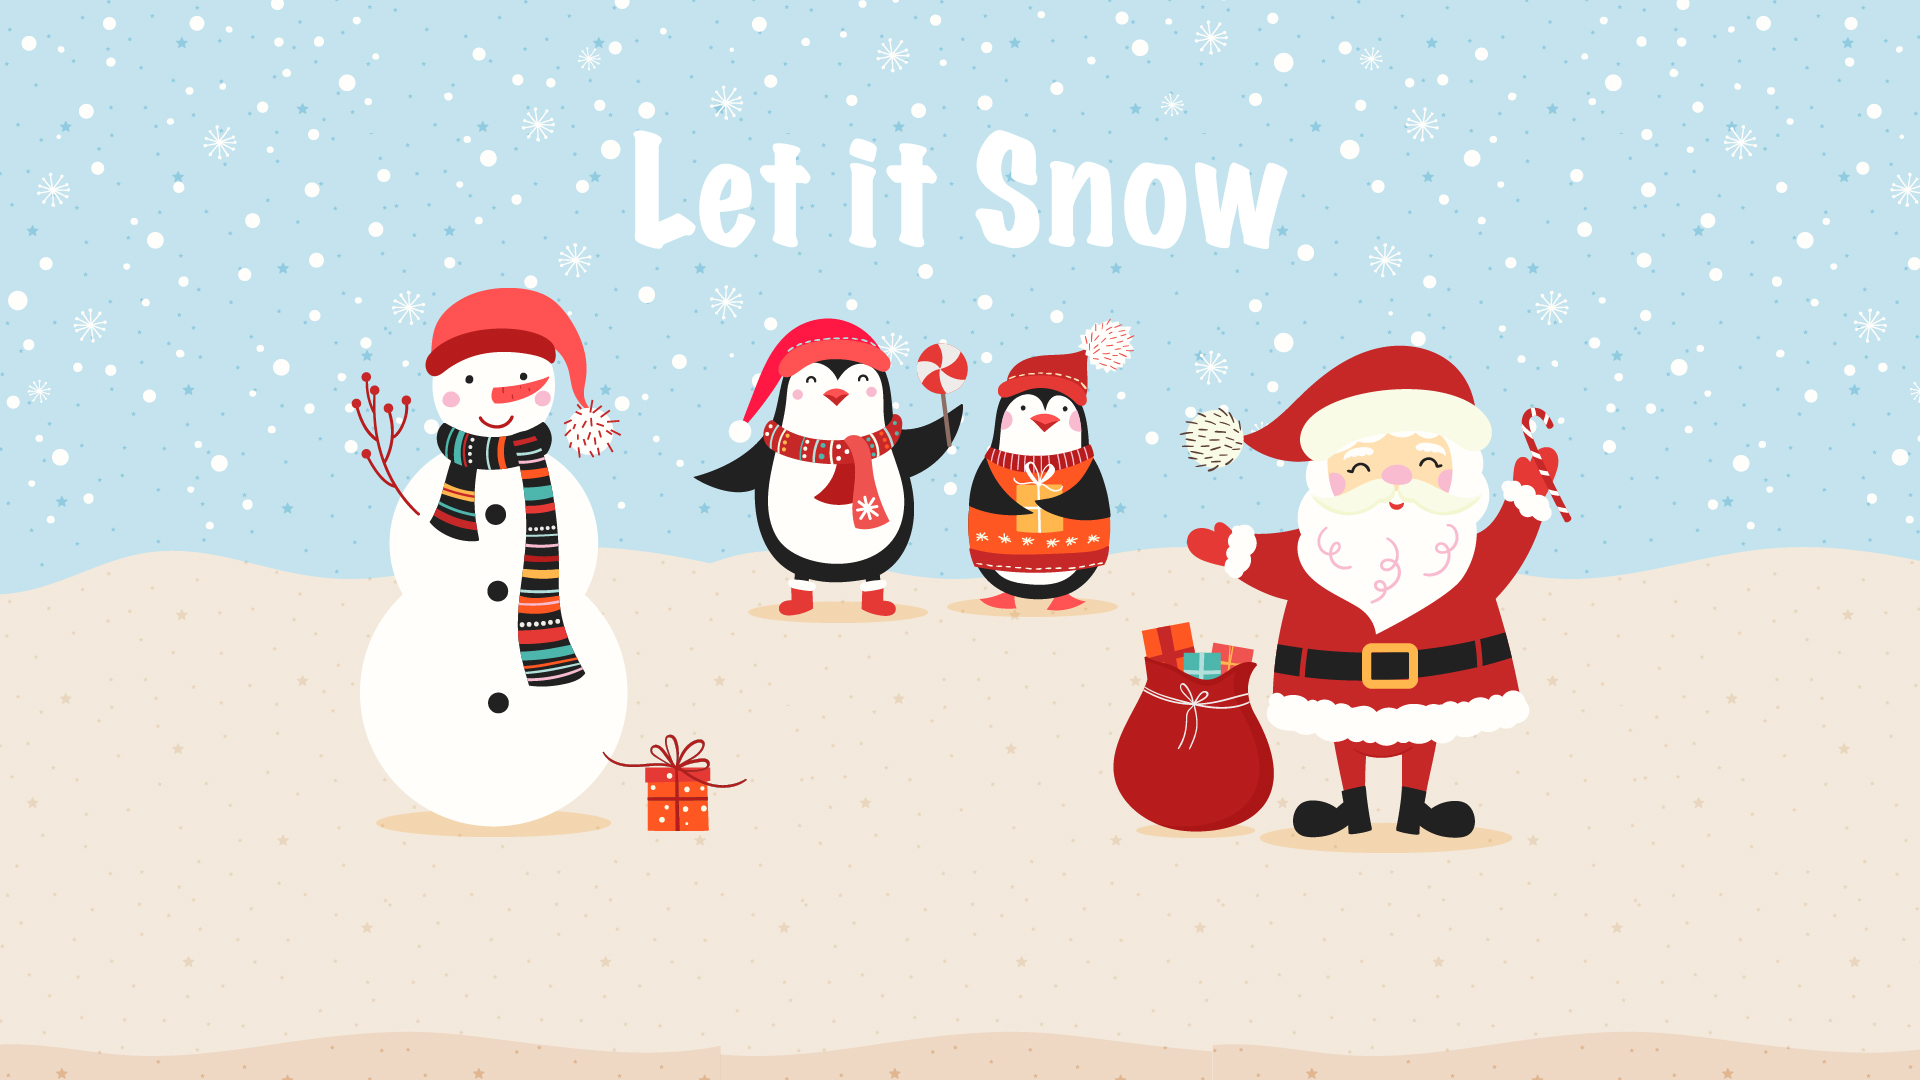 Christmas Wallpaper - Let it Snow - Cartoon